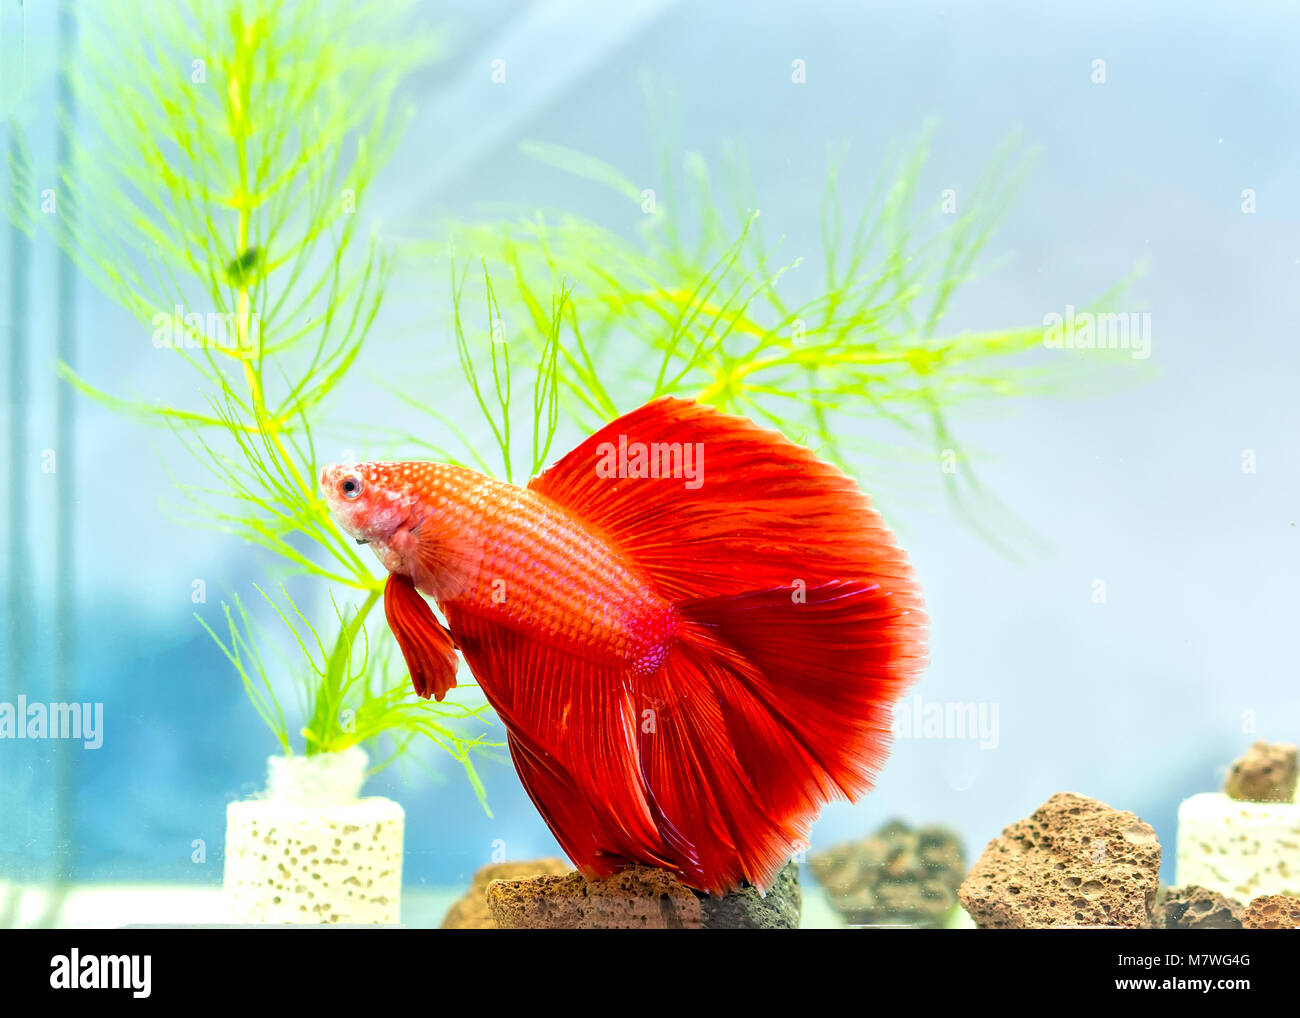 House Of Fish Scale Stock Photos & House Of Fish Scale Stock Images ...